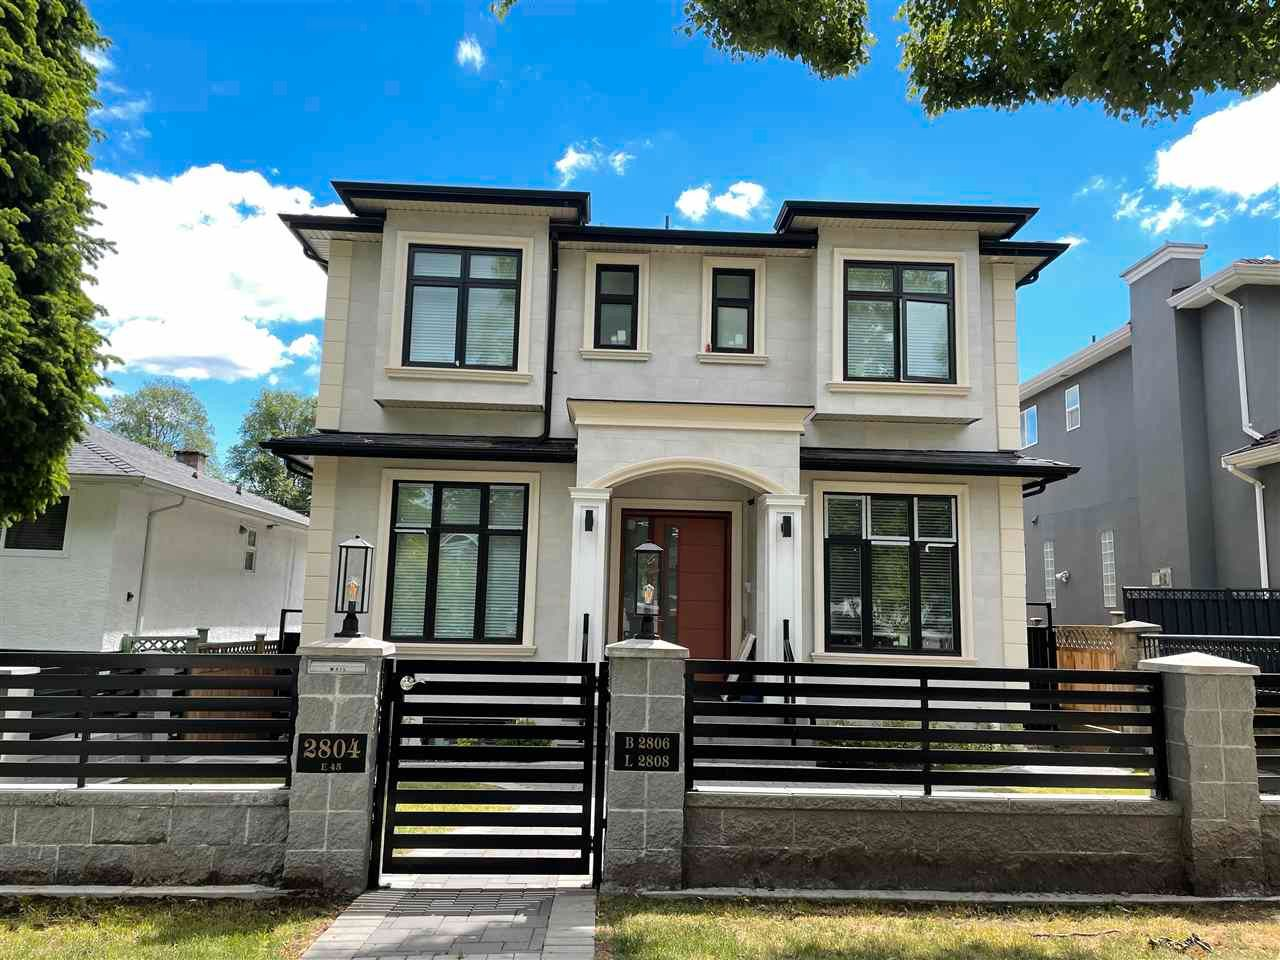 Main Photo: 2804 E 45TH Avenue in Vancouver: Killarney VE House for sale (Vancouver East)  : MLS®# R2590297